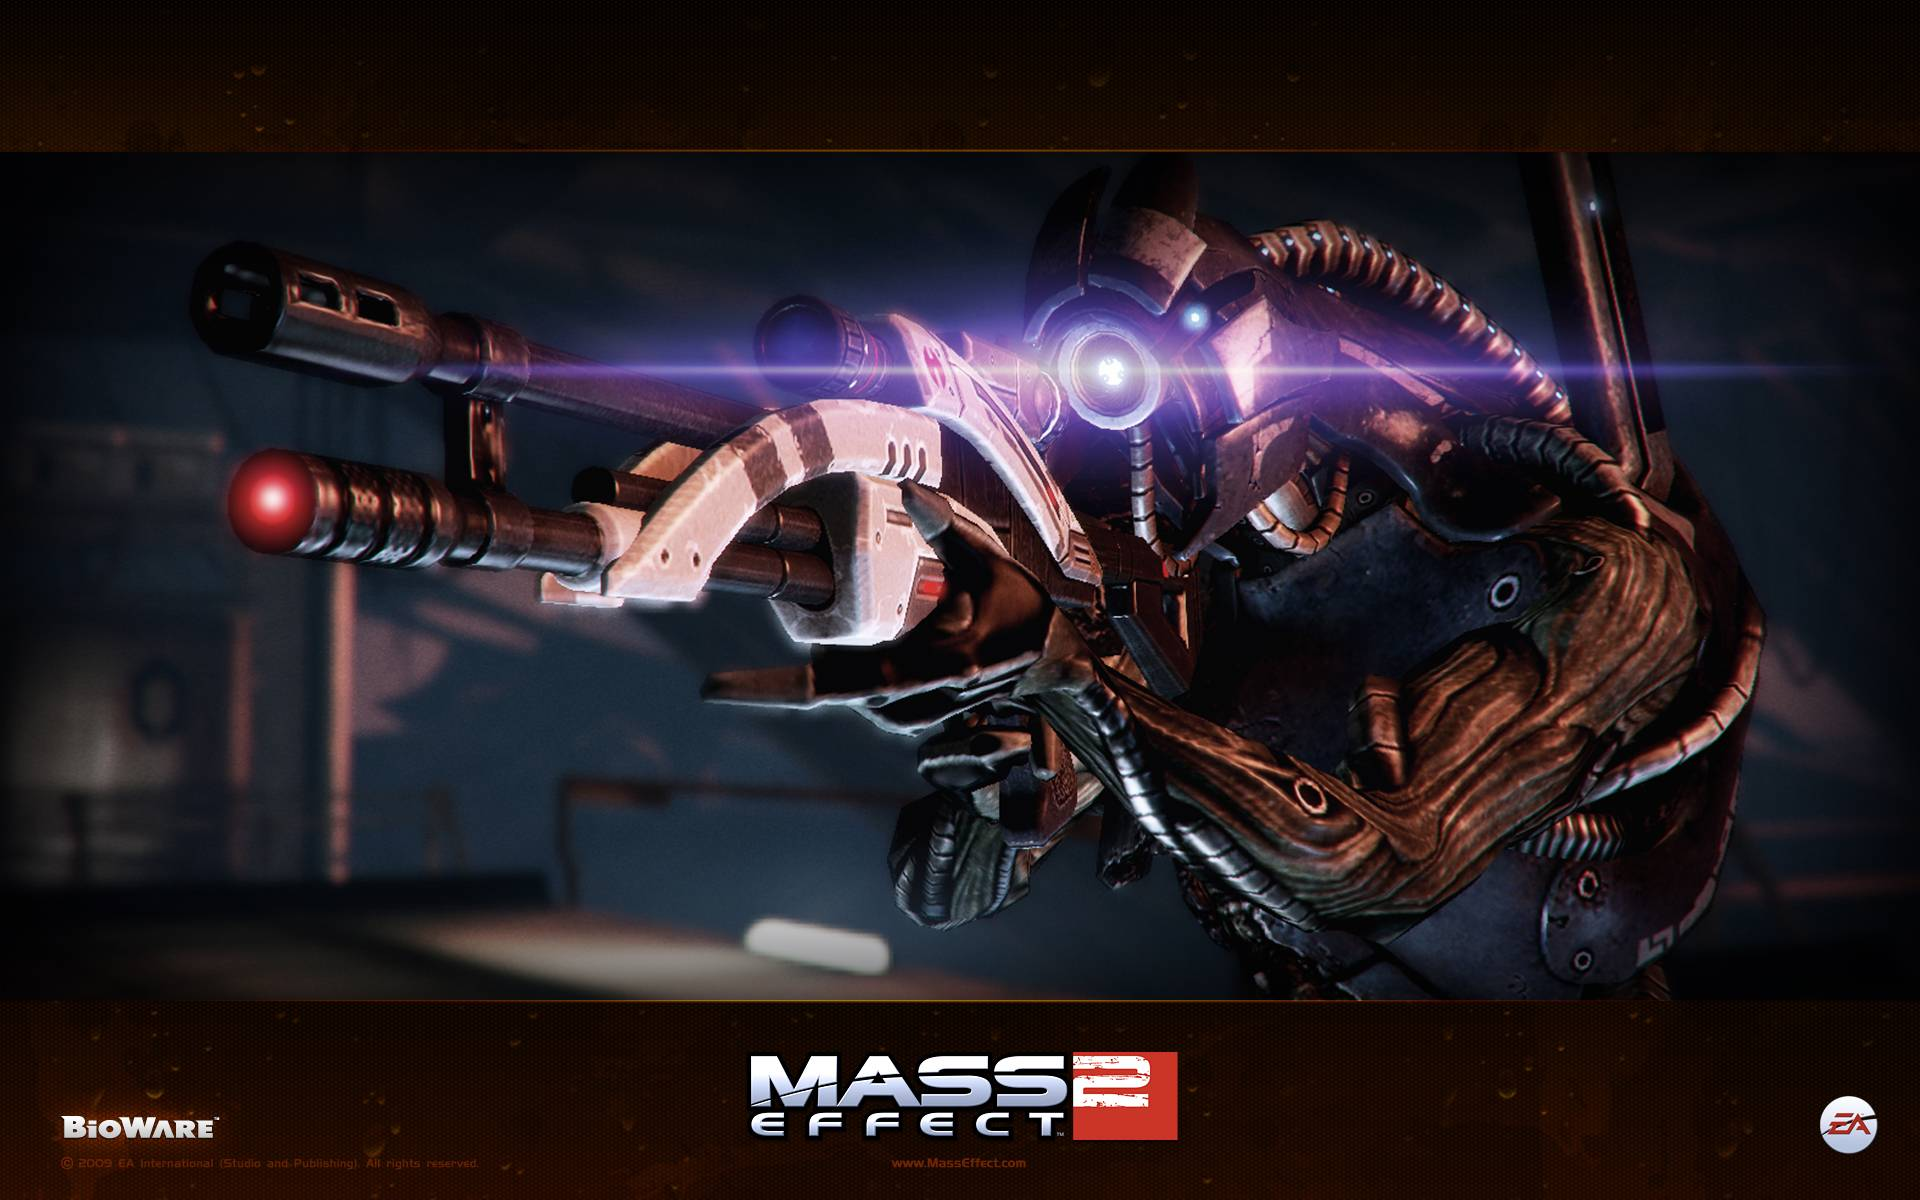 mass effect 2 ps3 wallpapers in hd